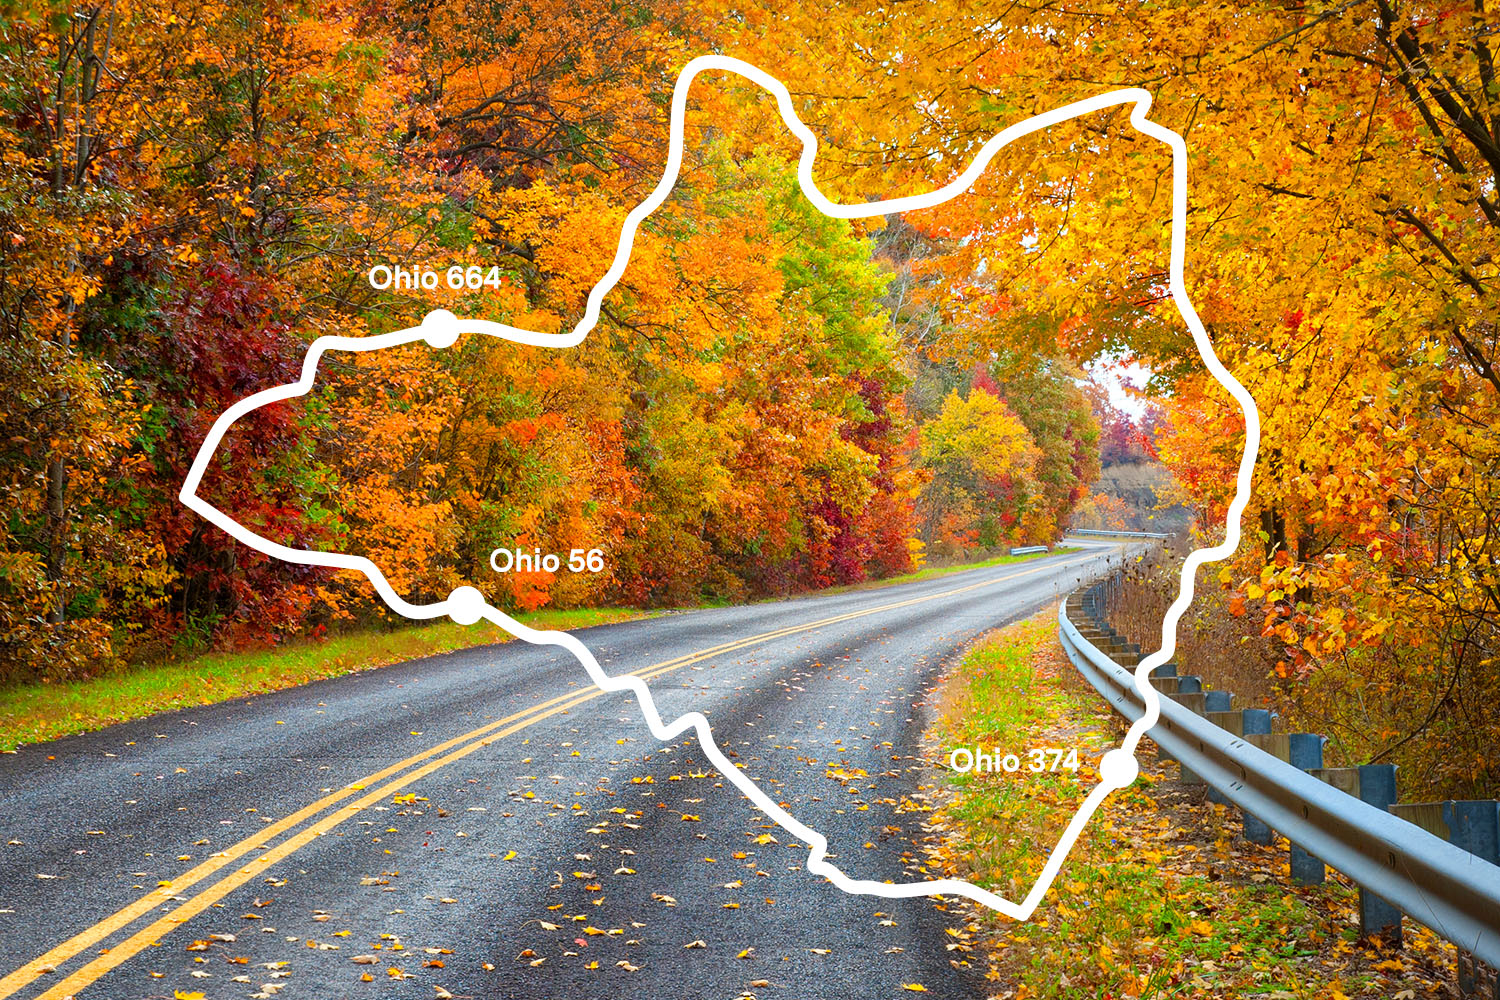 The Best Scenic Drive in the Ohio Valley is OH 664 to 56 to 375, The Hocking Hills Loop